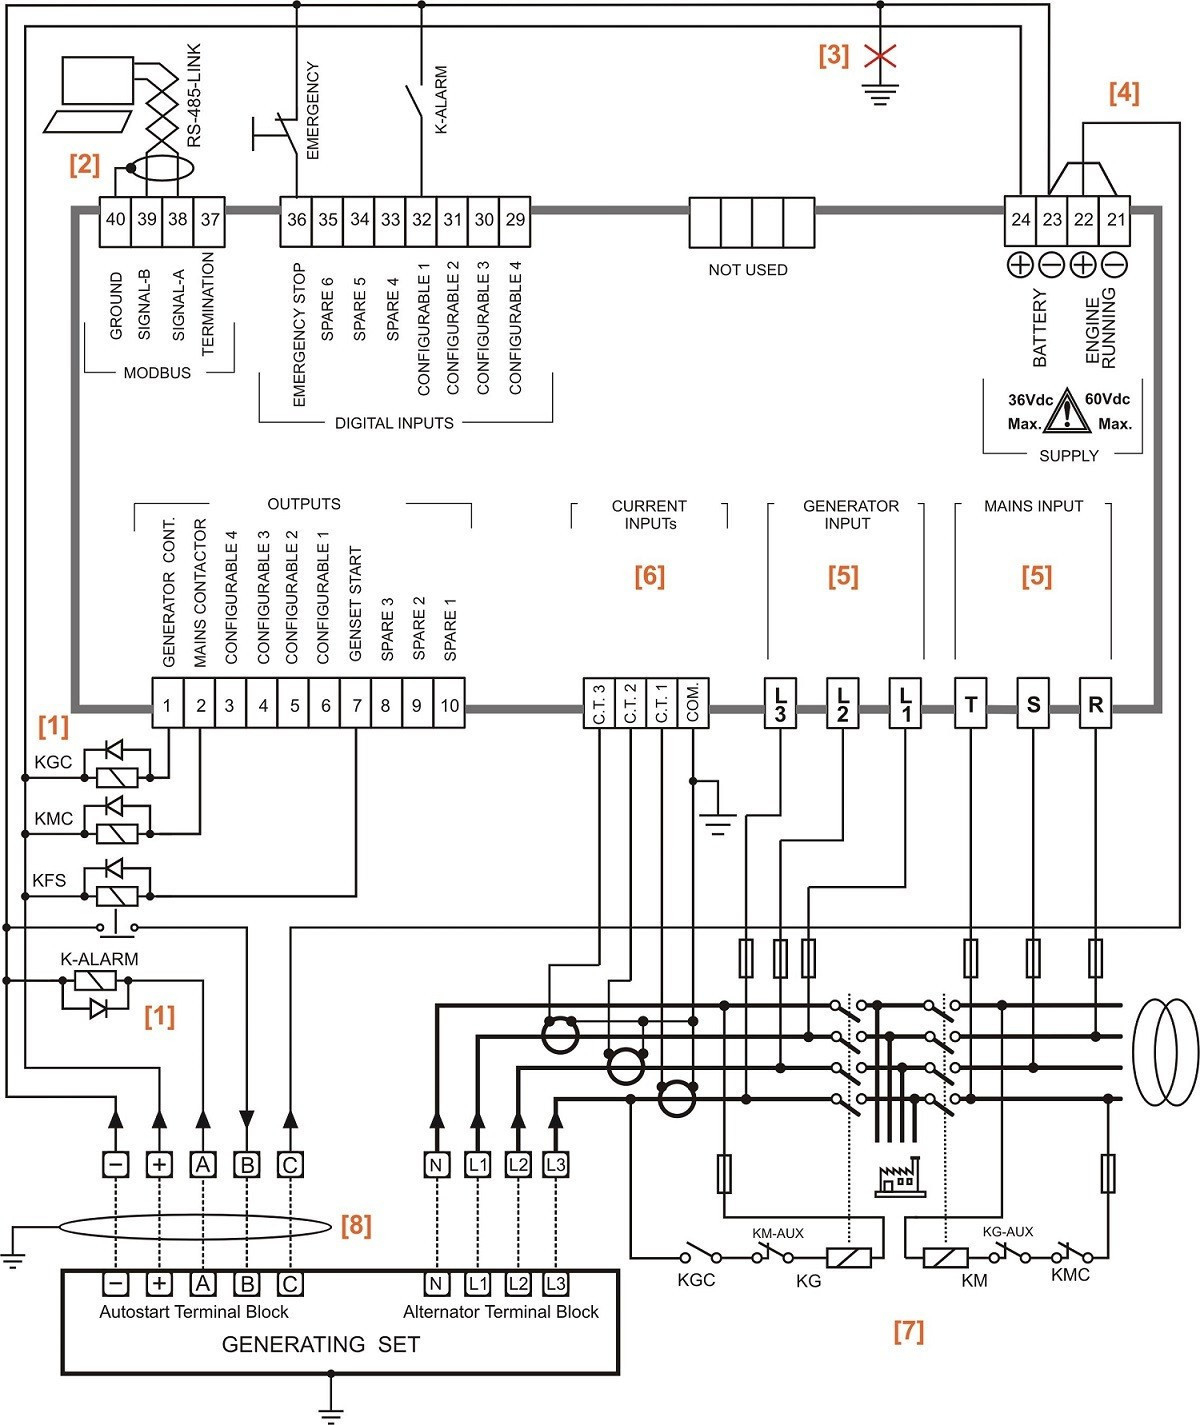 circuit breaker panel wiring generator transfer panel wiring